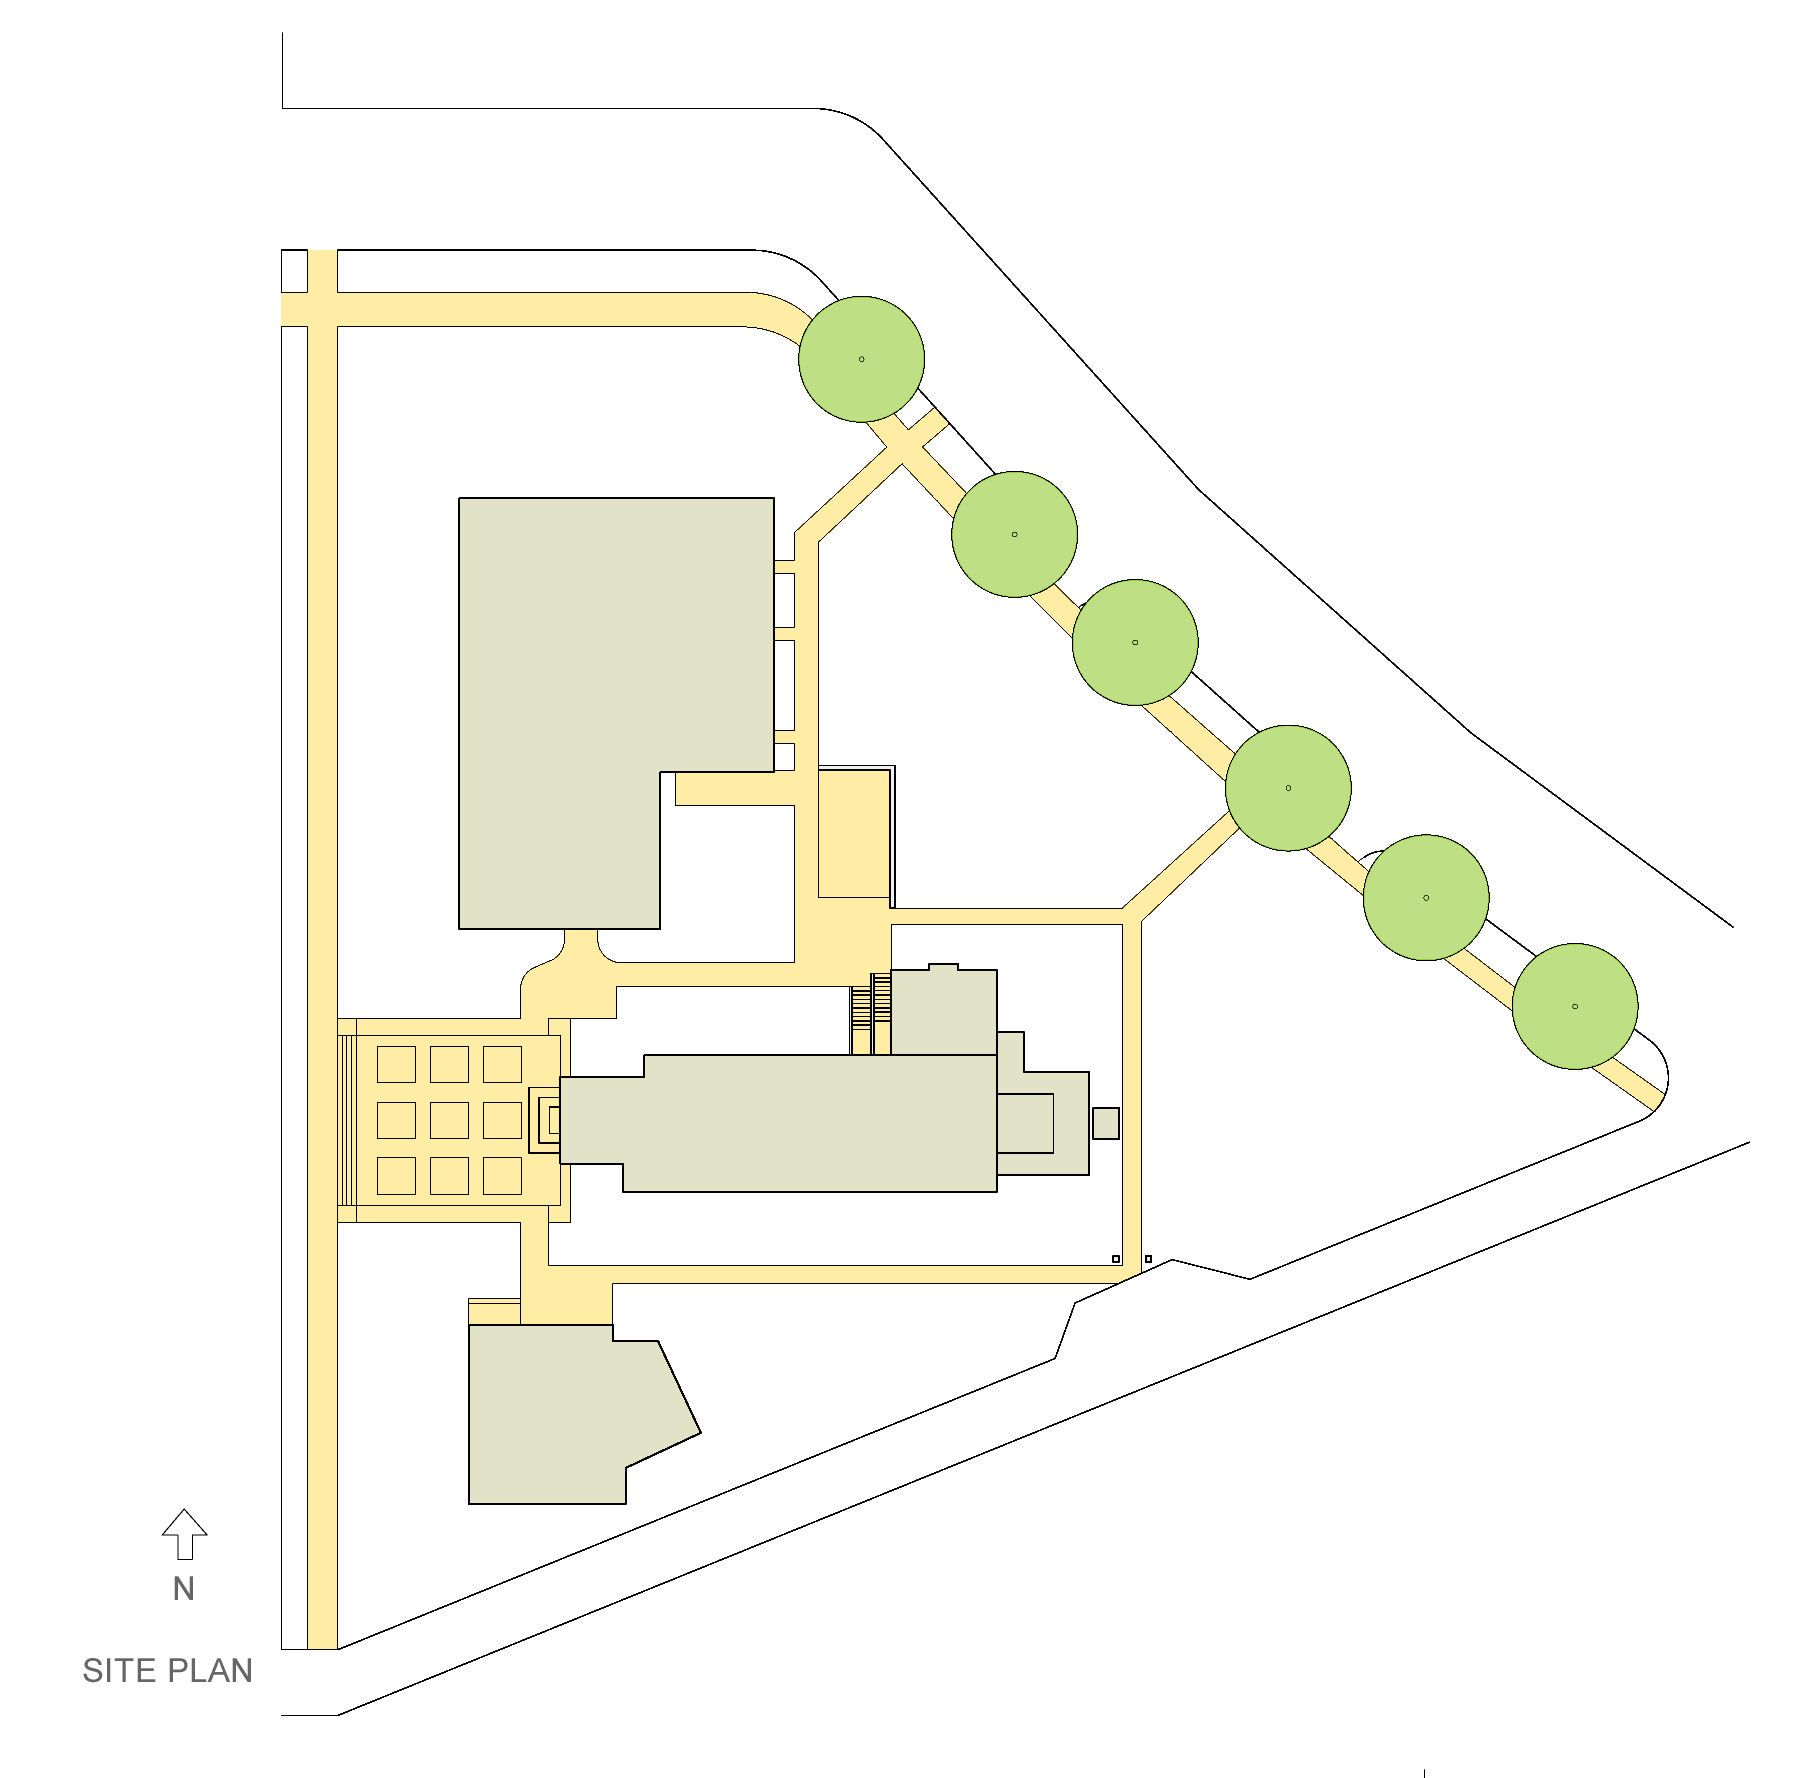 site plan copy.jpg